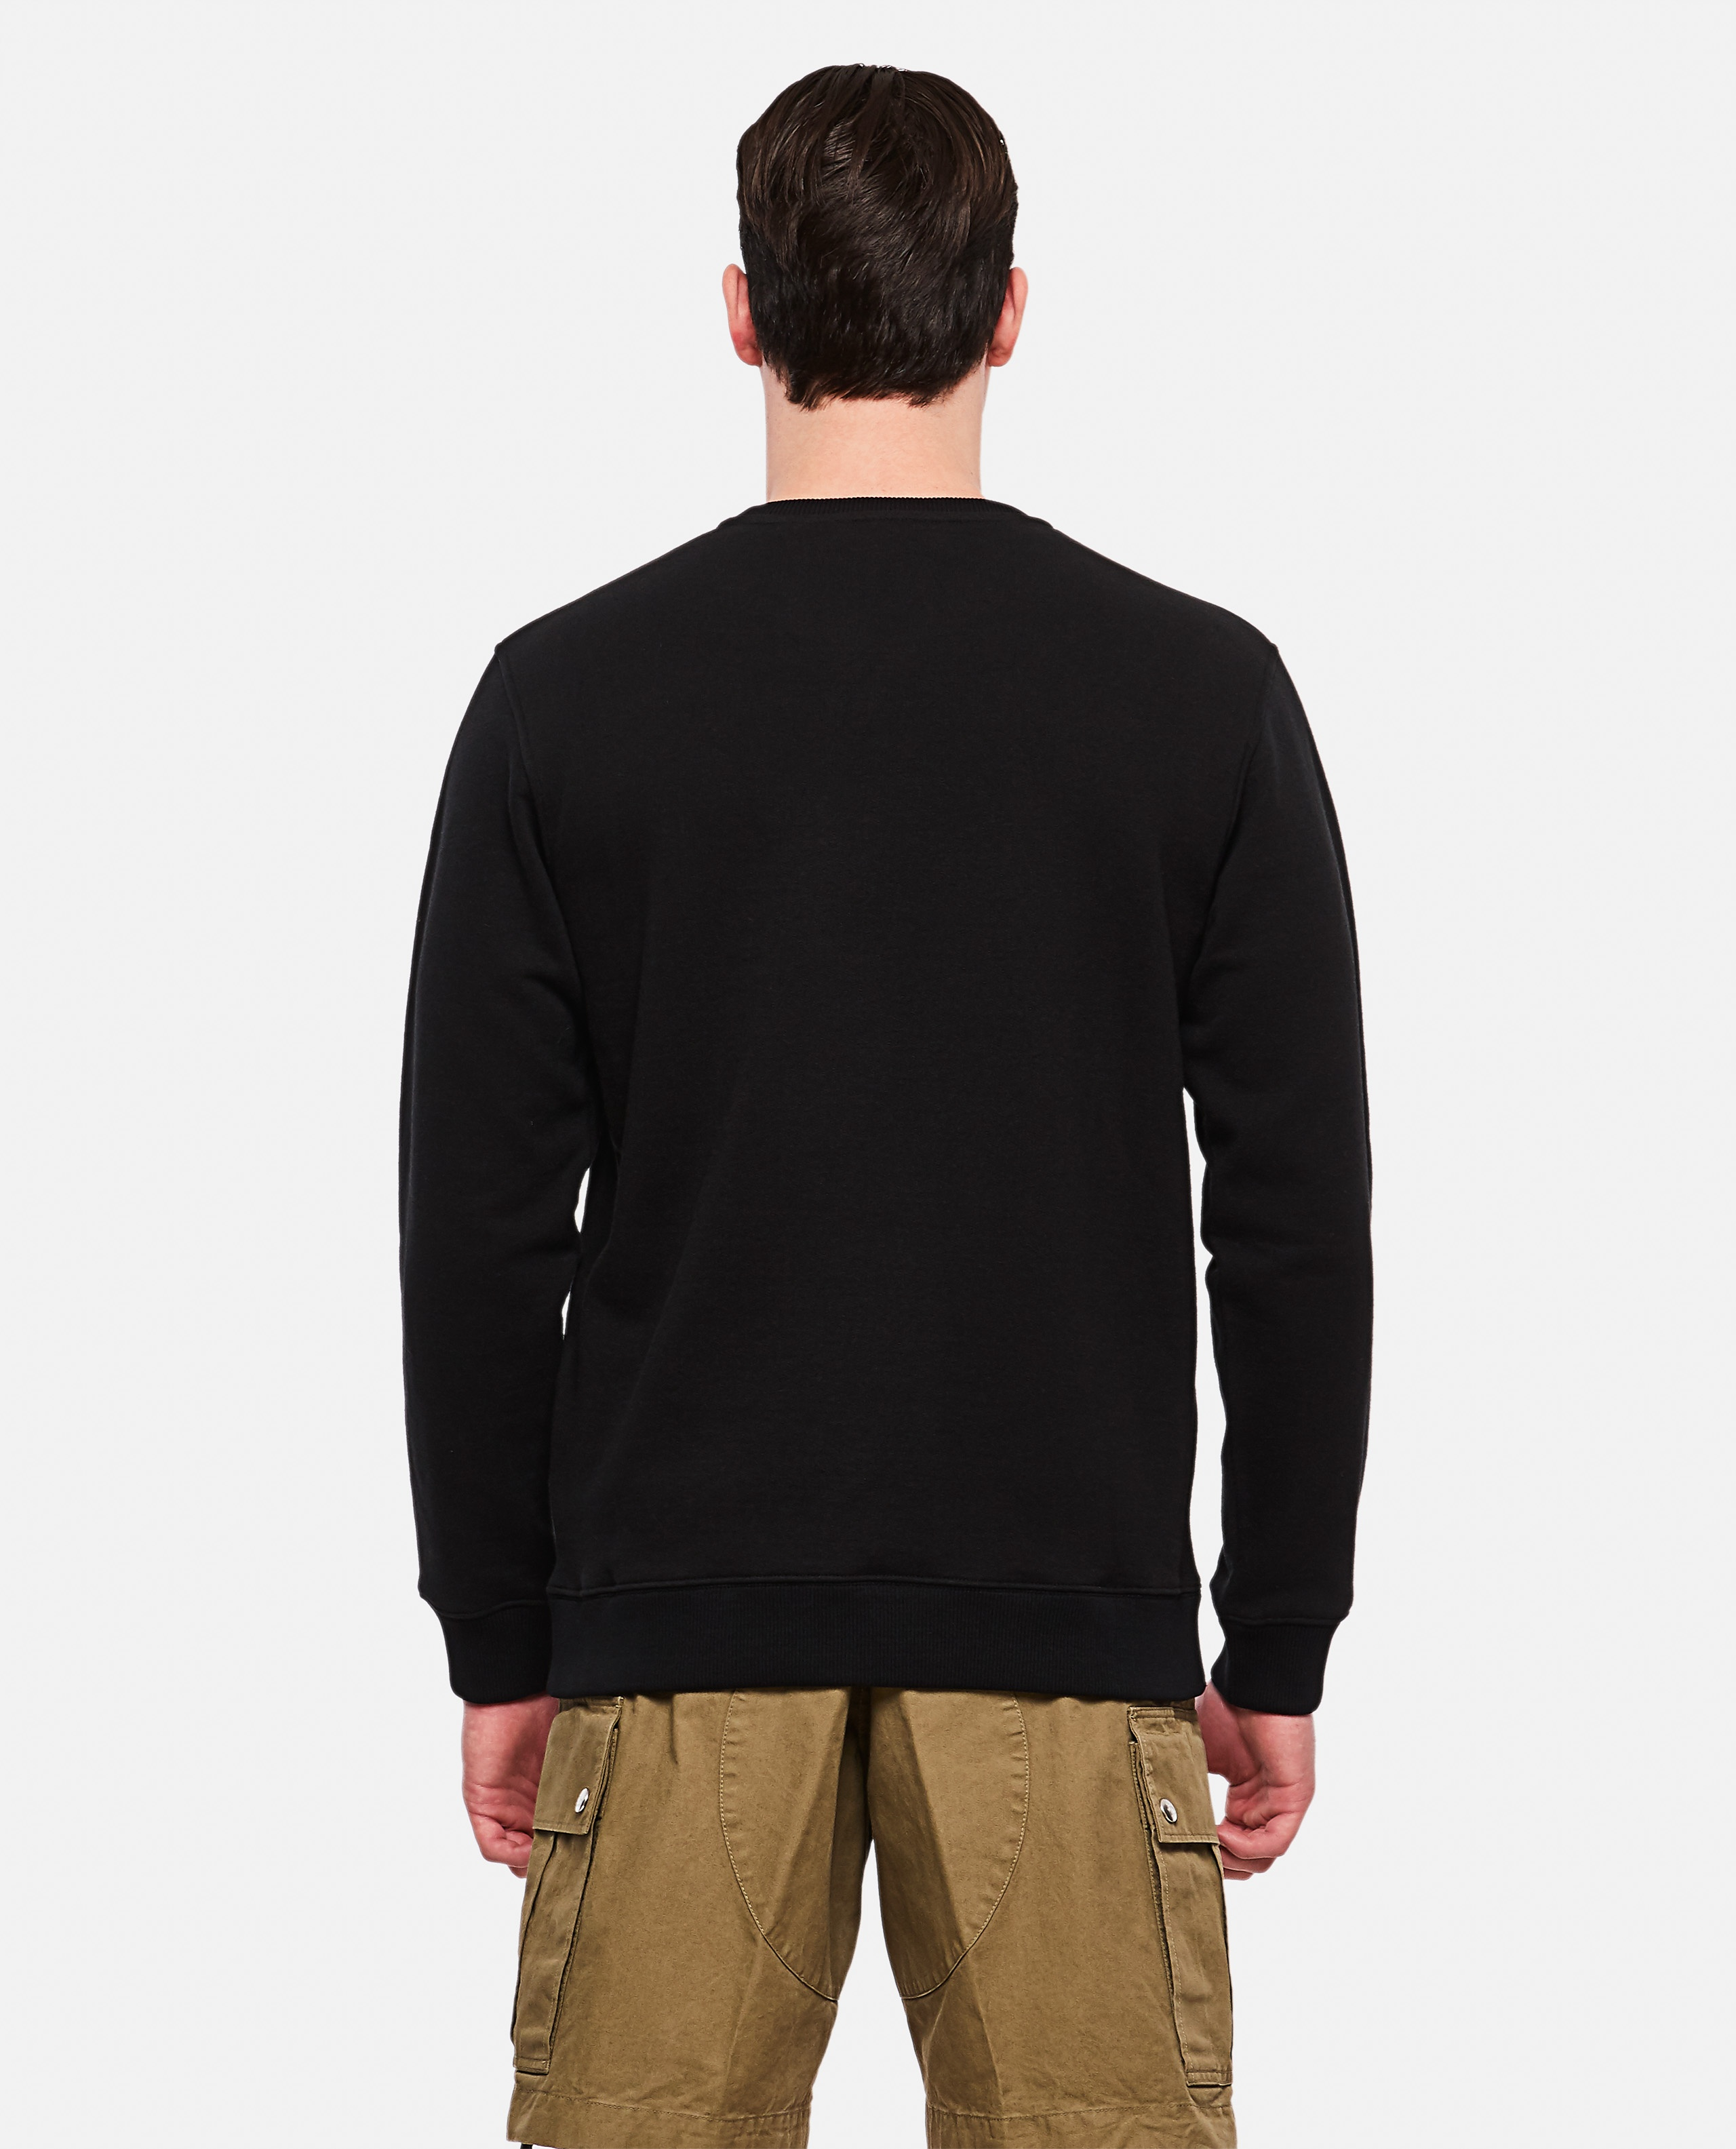 4G sweater Men Givenchy 000226470033486 3